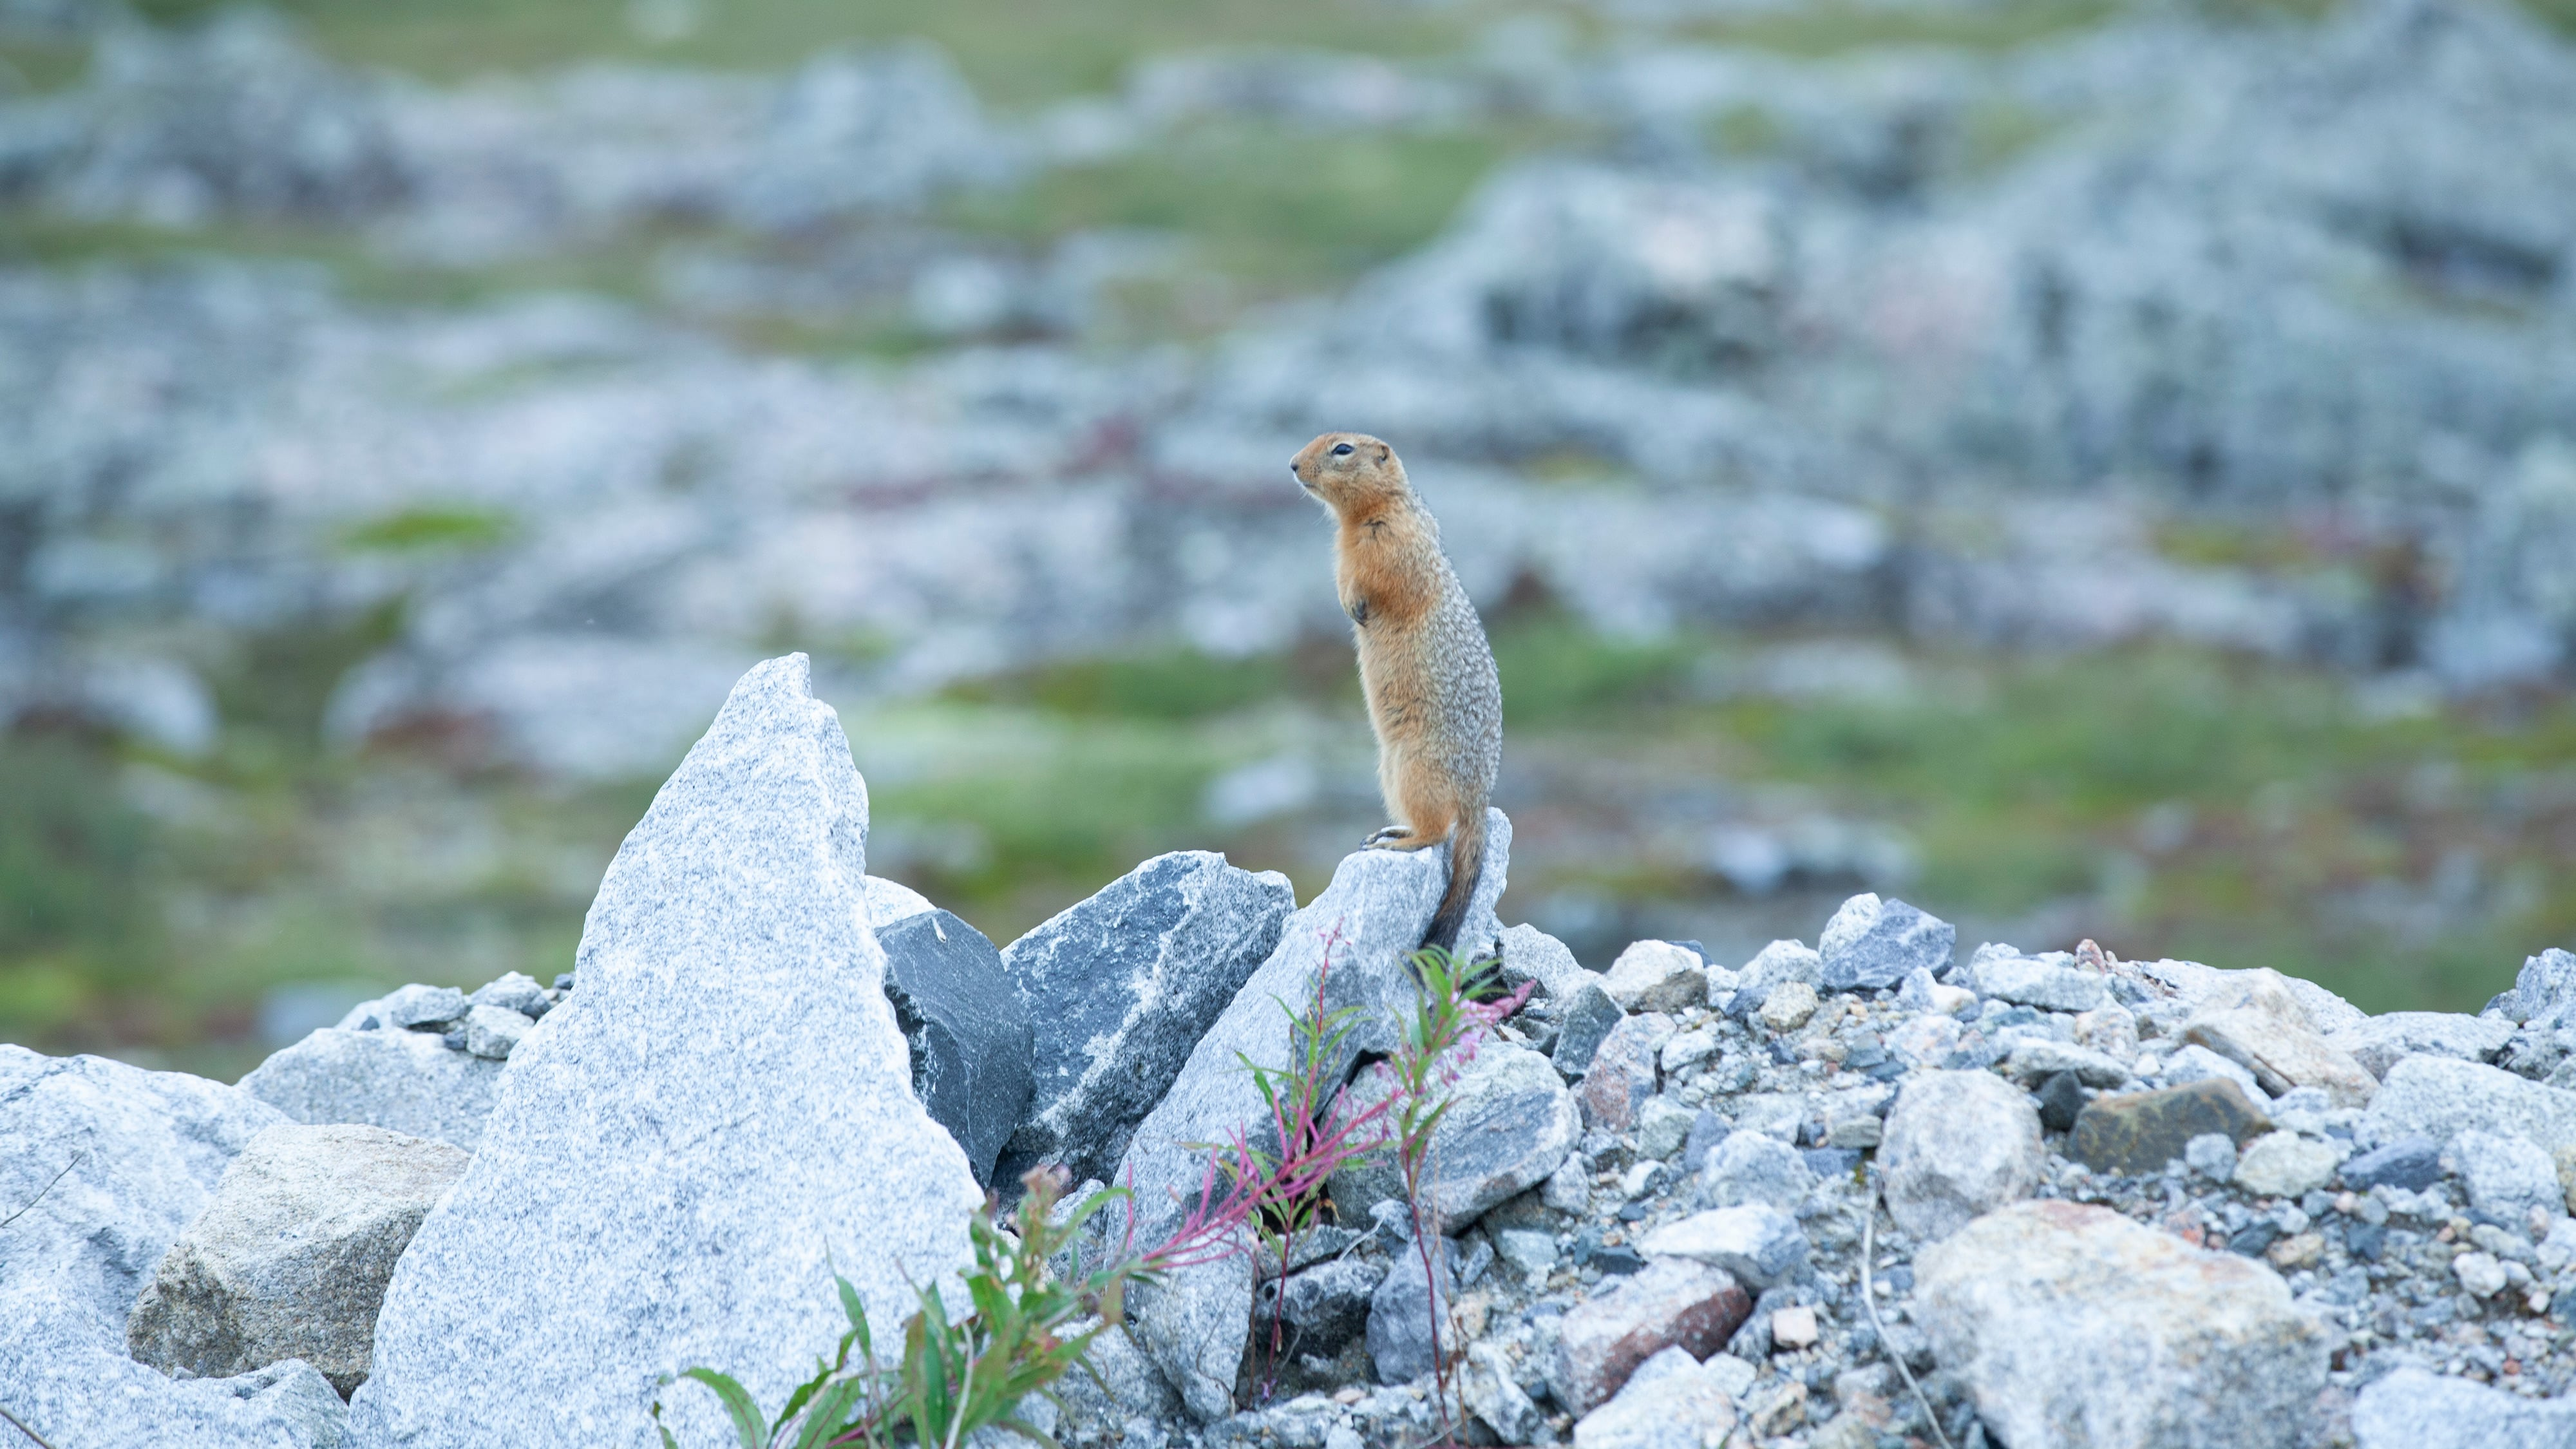 Small animal perched on rock